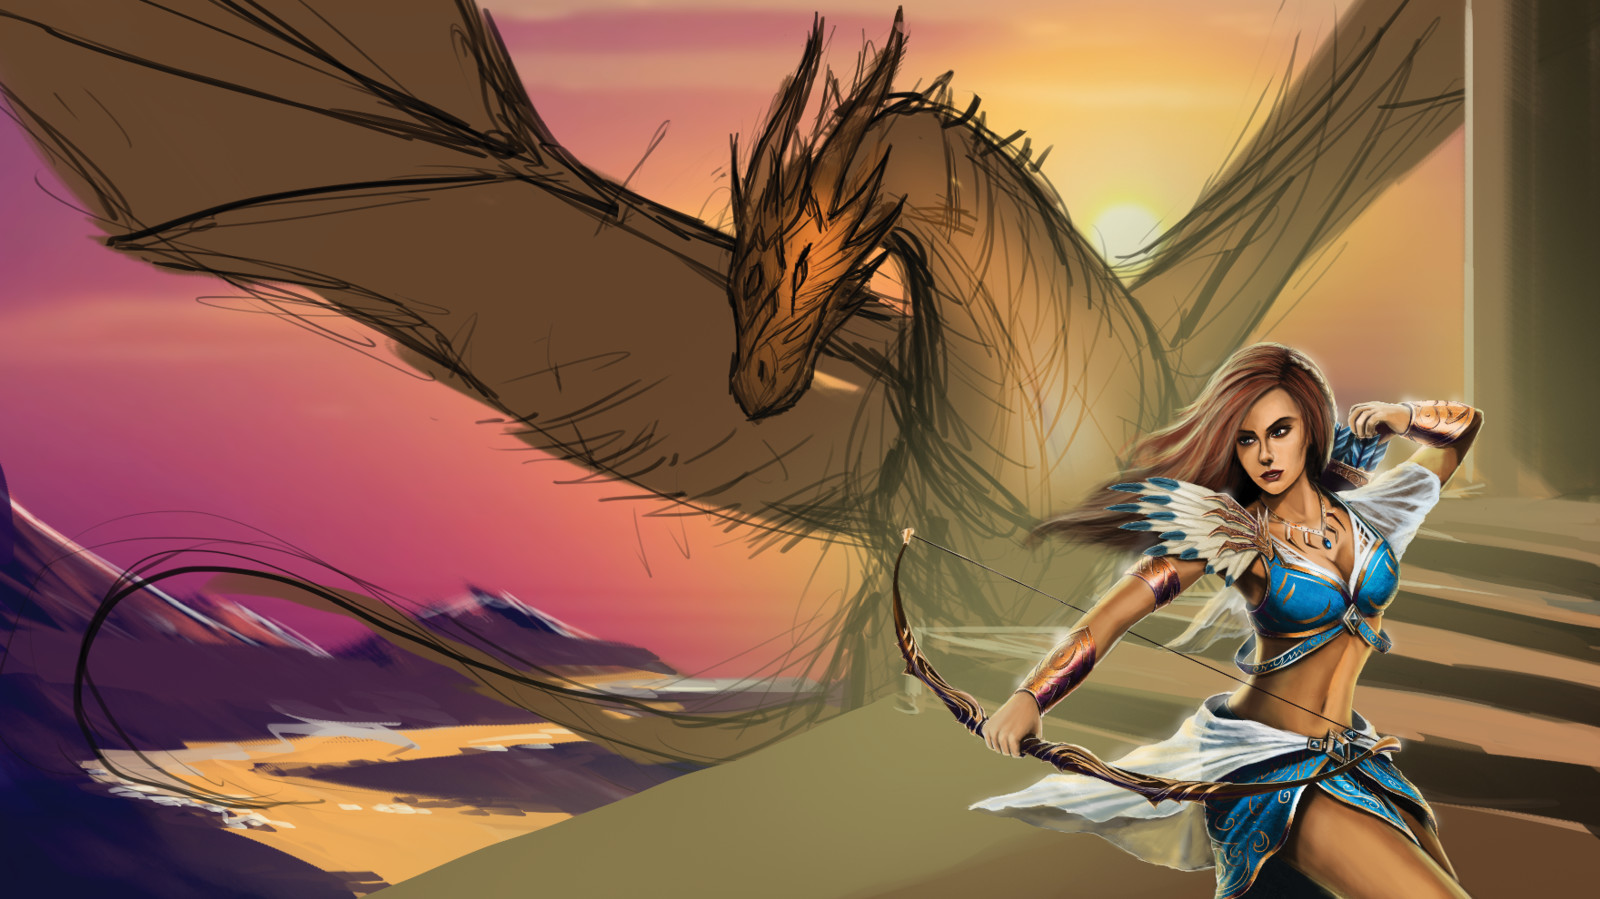 Aella almost done, getting in the details for the landscape